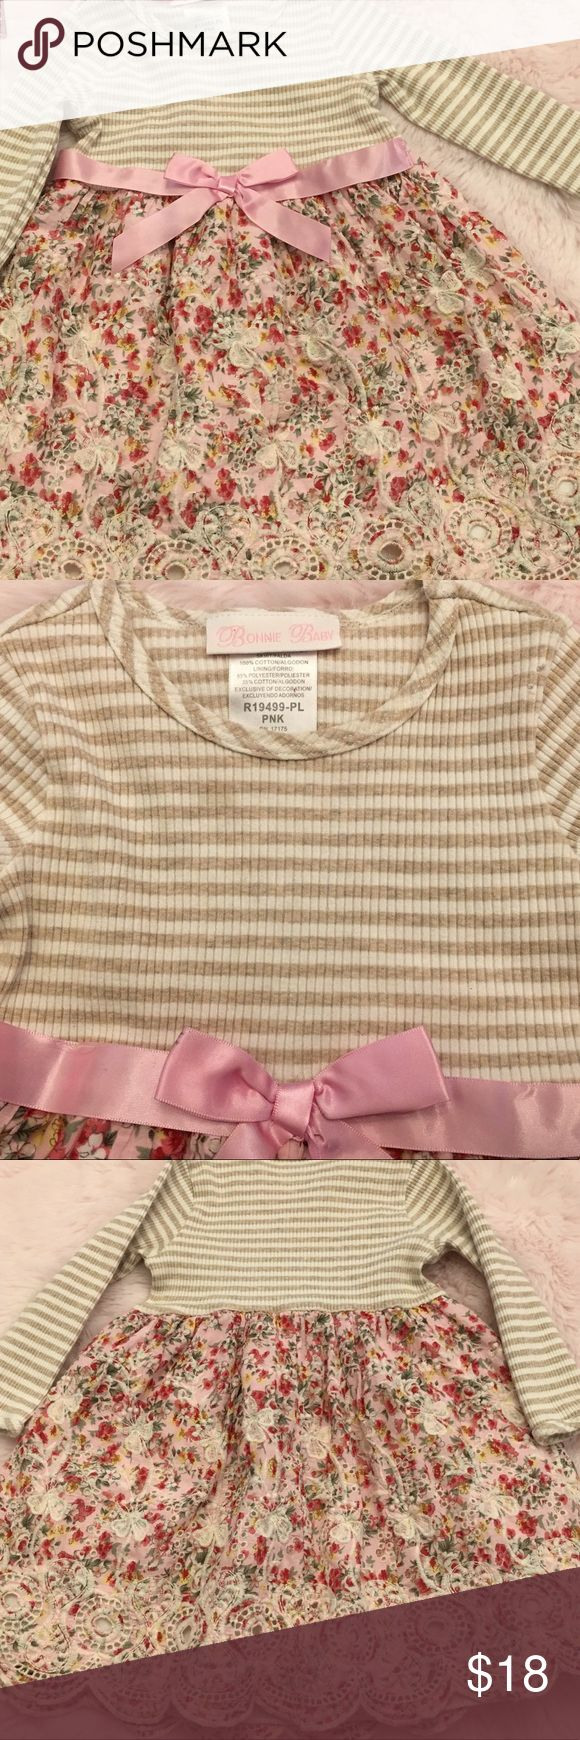 Toddler Girl Dress by Bonnie Baby Pink Floral 24mo Adorable dress, pink floral & cream scalloped frilly hem mixed with the khaki @ cream long sleeve top portion make a combined striking dress. Pink satin ribbon @ waistline. Casual & comfortable. Wash & dry. EUC! Bonnie Baby Dresses Casual